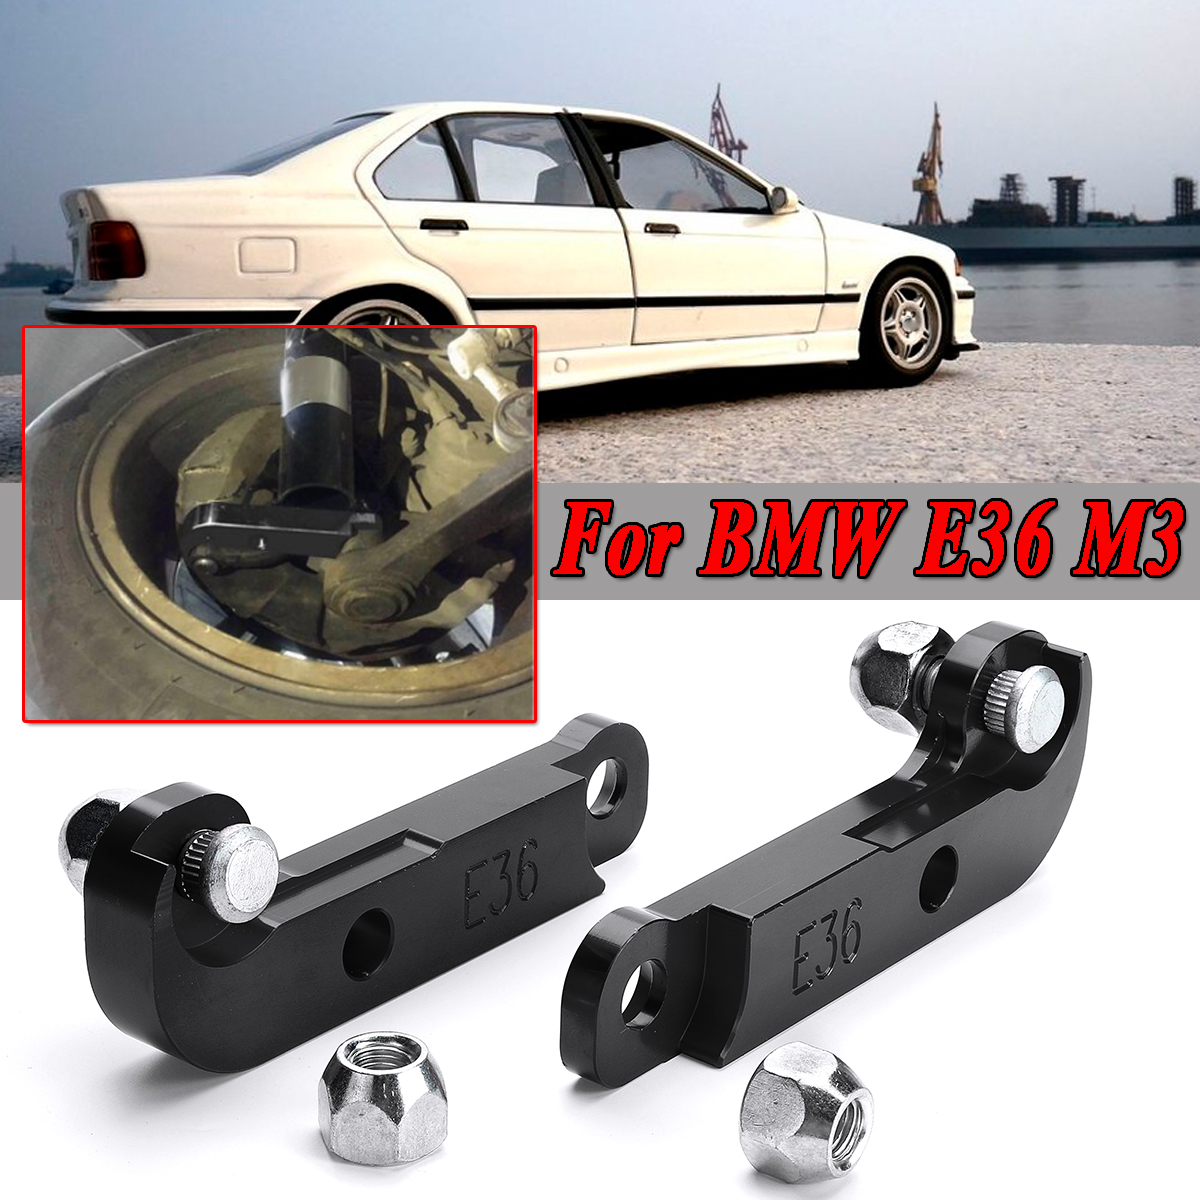 small resolution of red black 2x adapter increasing turn angles about 25 30 drift lock kit for bmw e36 m3 tuning drift power adapters mounting in axle parts from